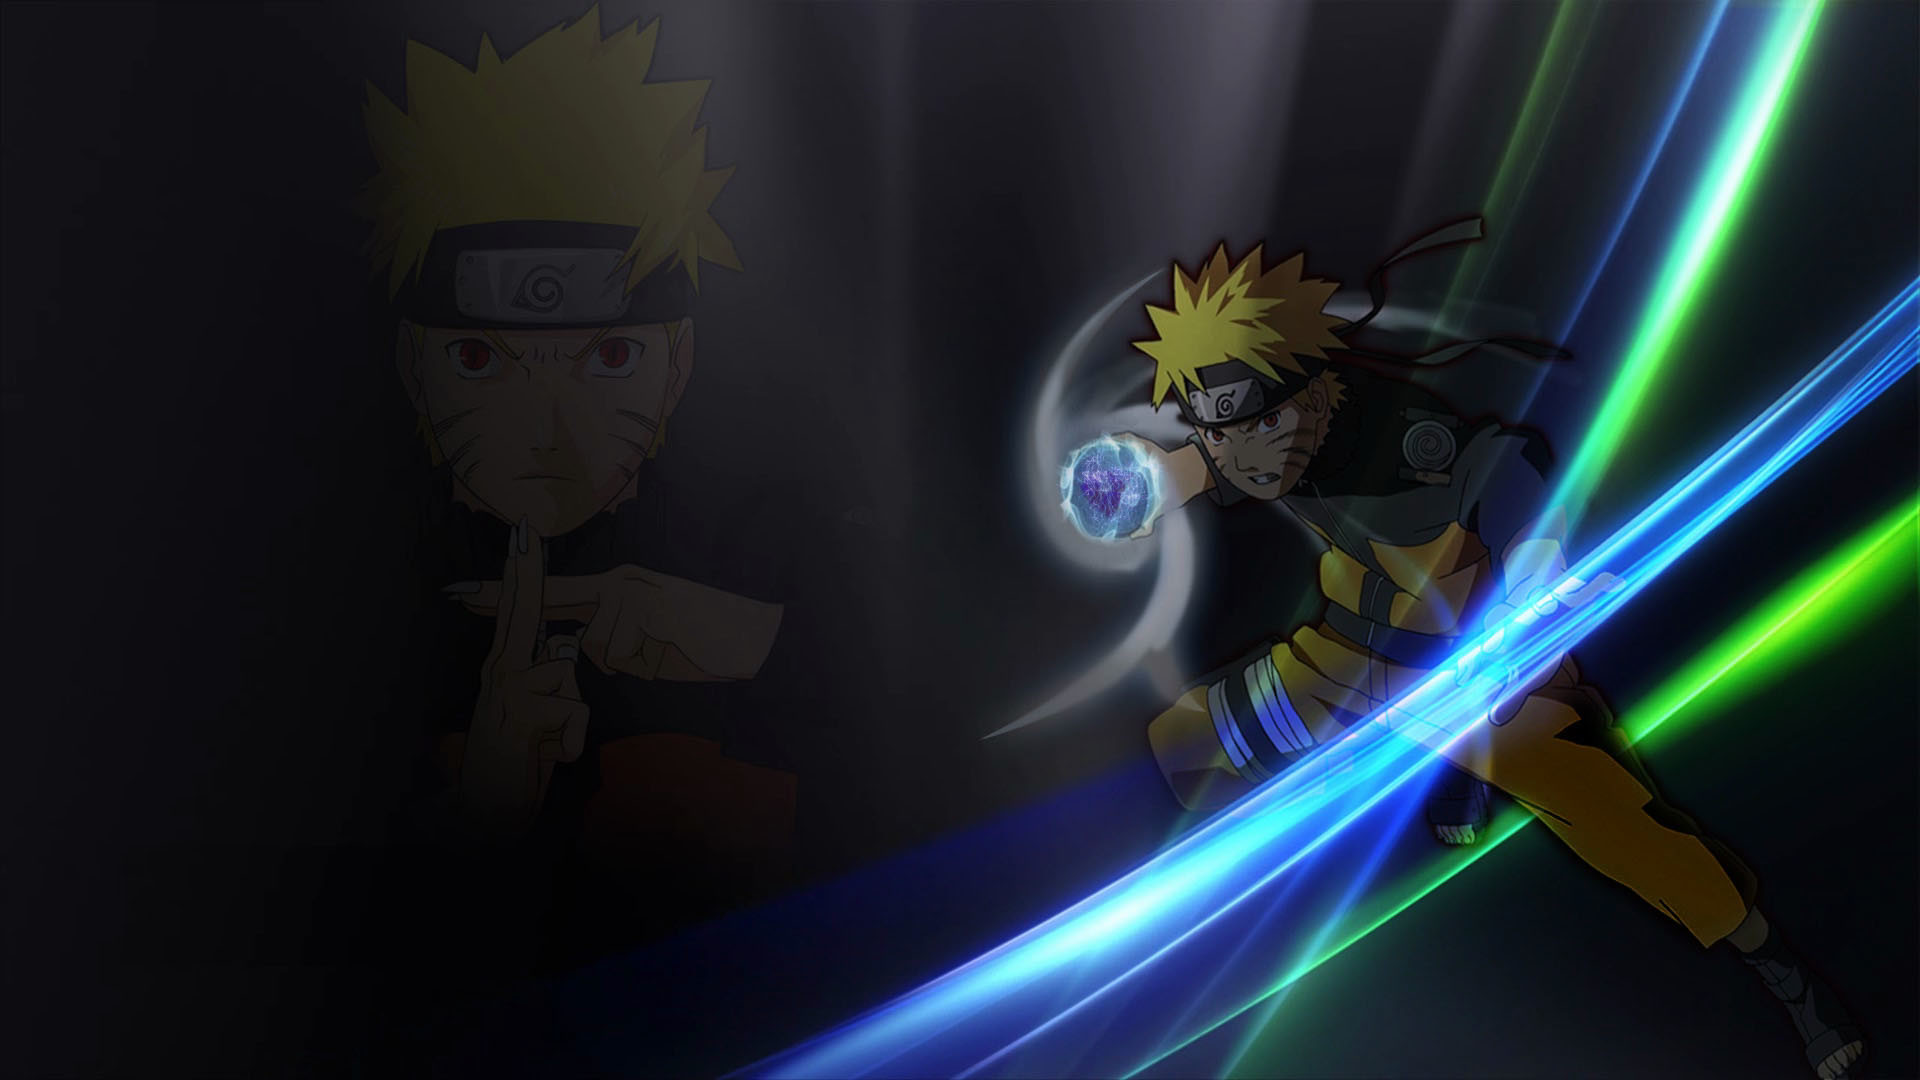 1920x1080 Backgrounds Gallery Naruto wallpapers HD free - 166024